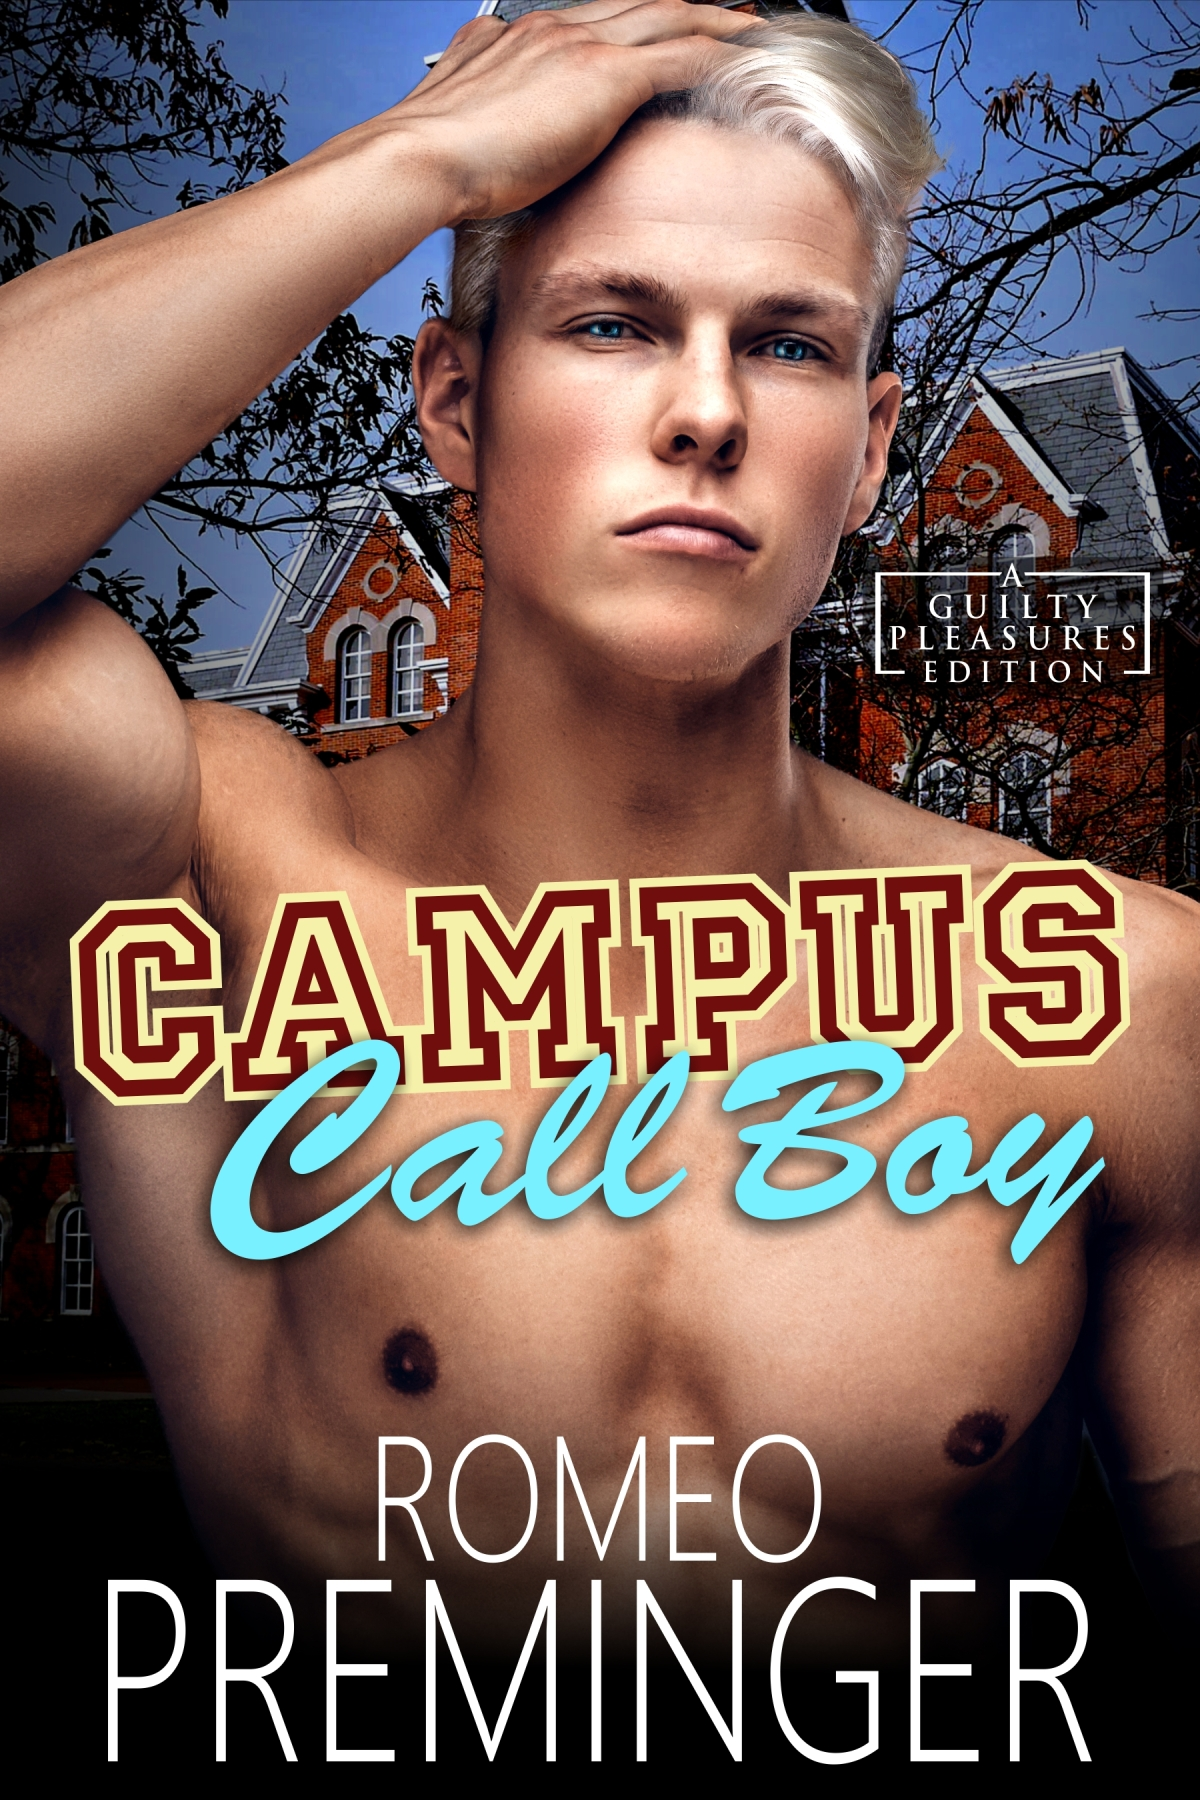 Campus Call Boy